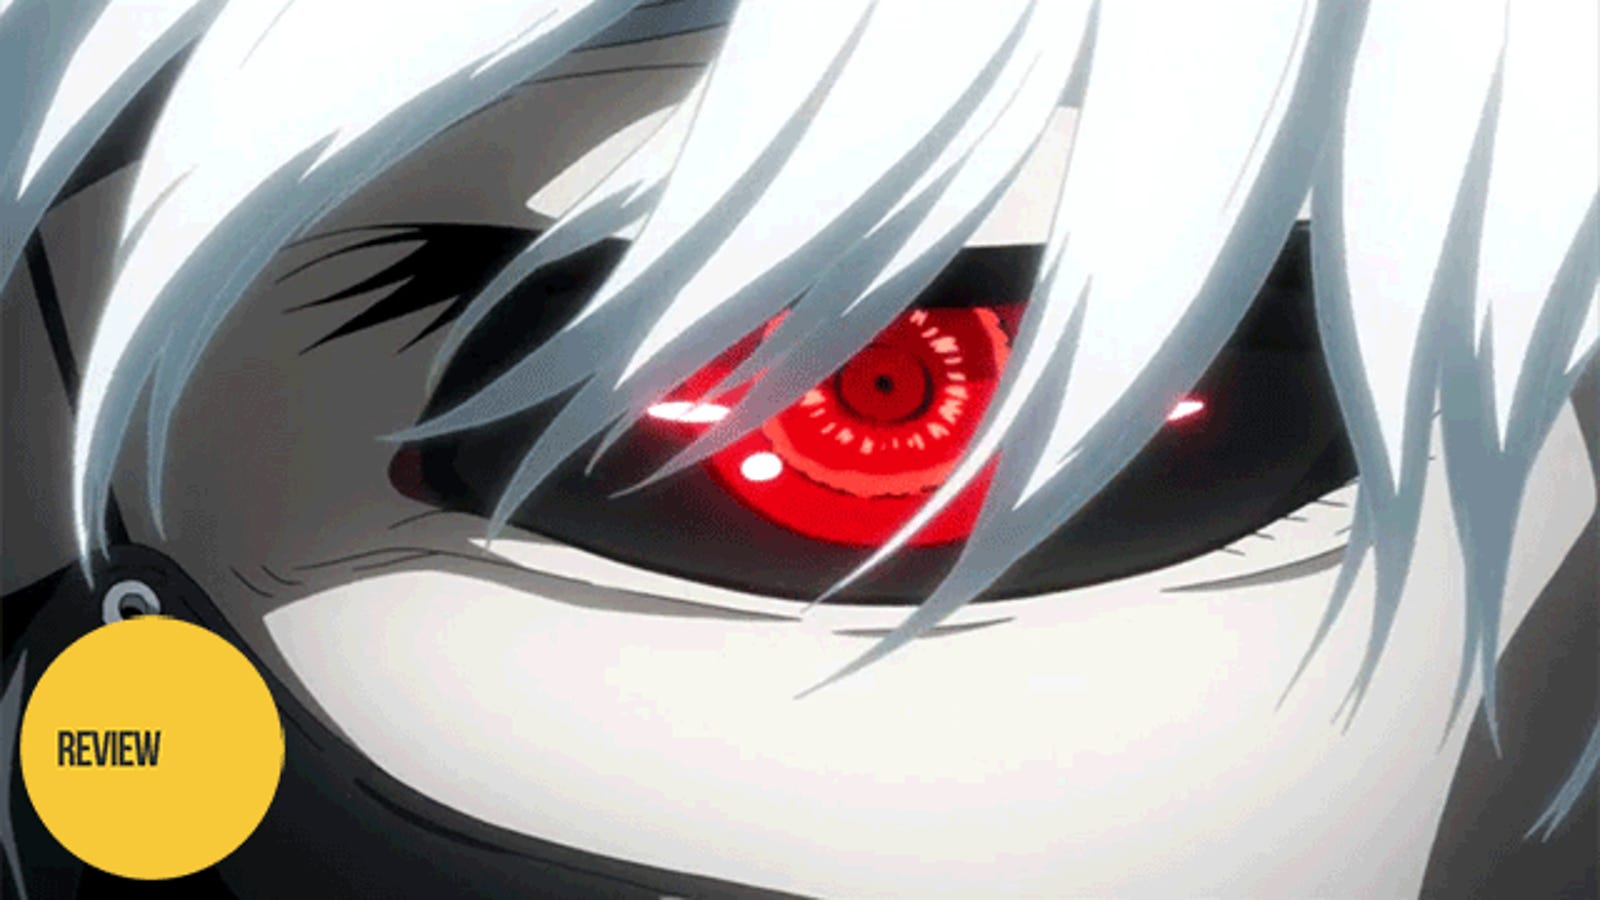 Tokyo Ghoul √A Has Strong Characters But a Weak Story